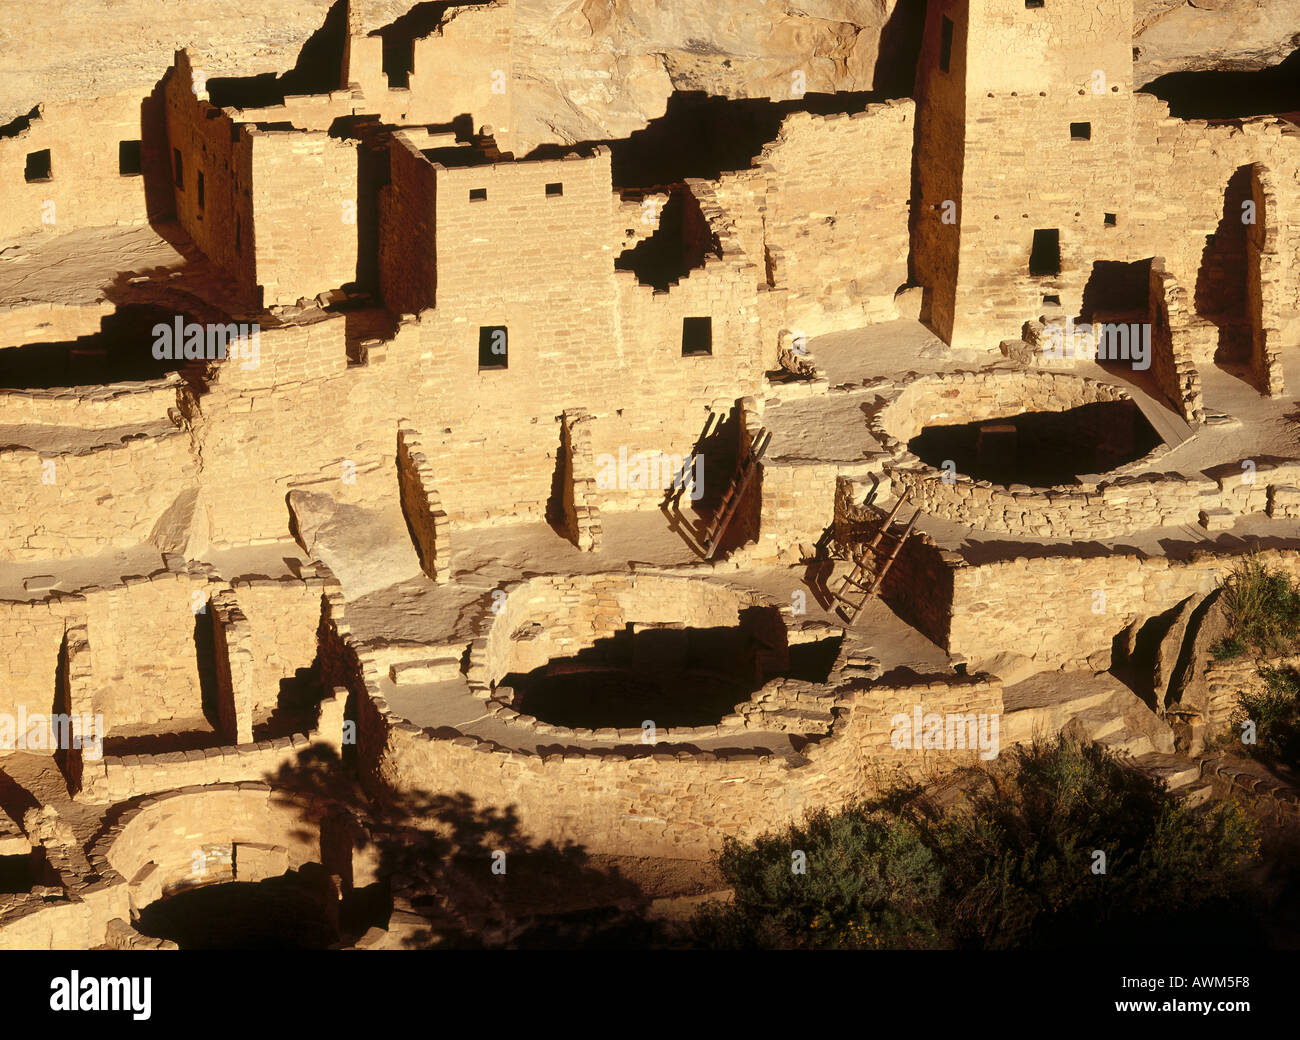 Ruins of historical adobe buildings, Anasazi Ruins, Mesa Verde National Park, Colorado, USA - Stock Image